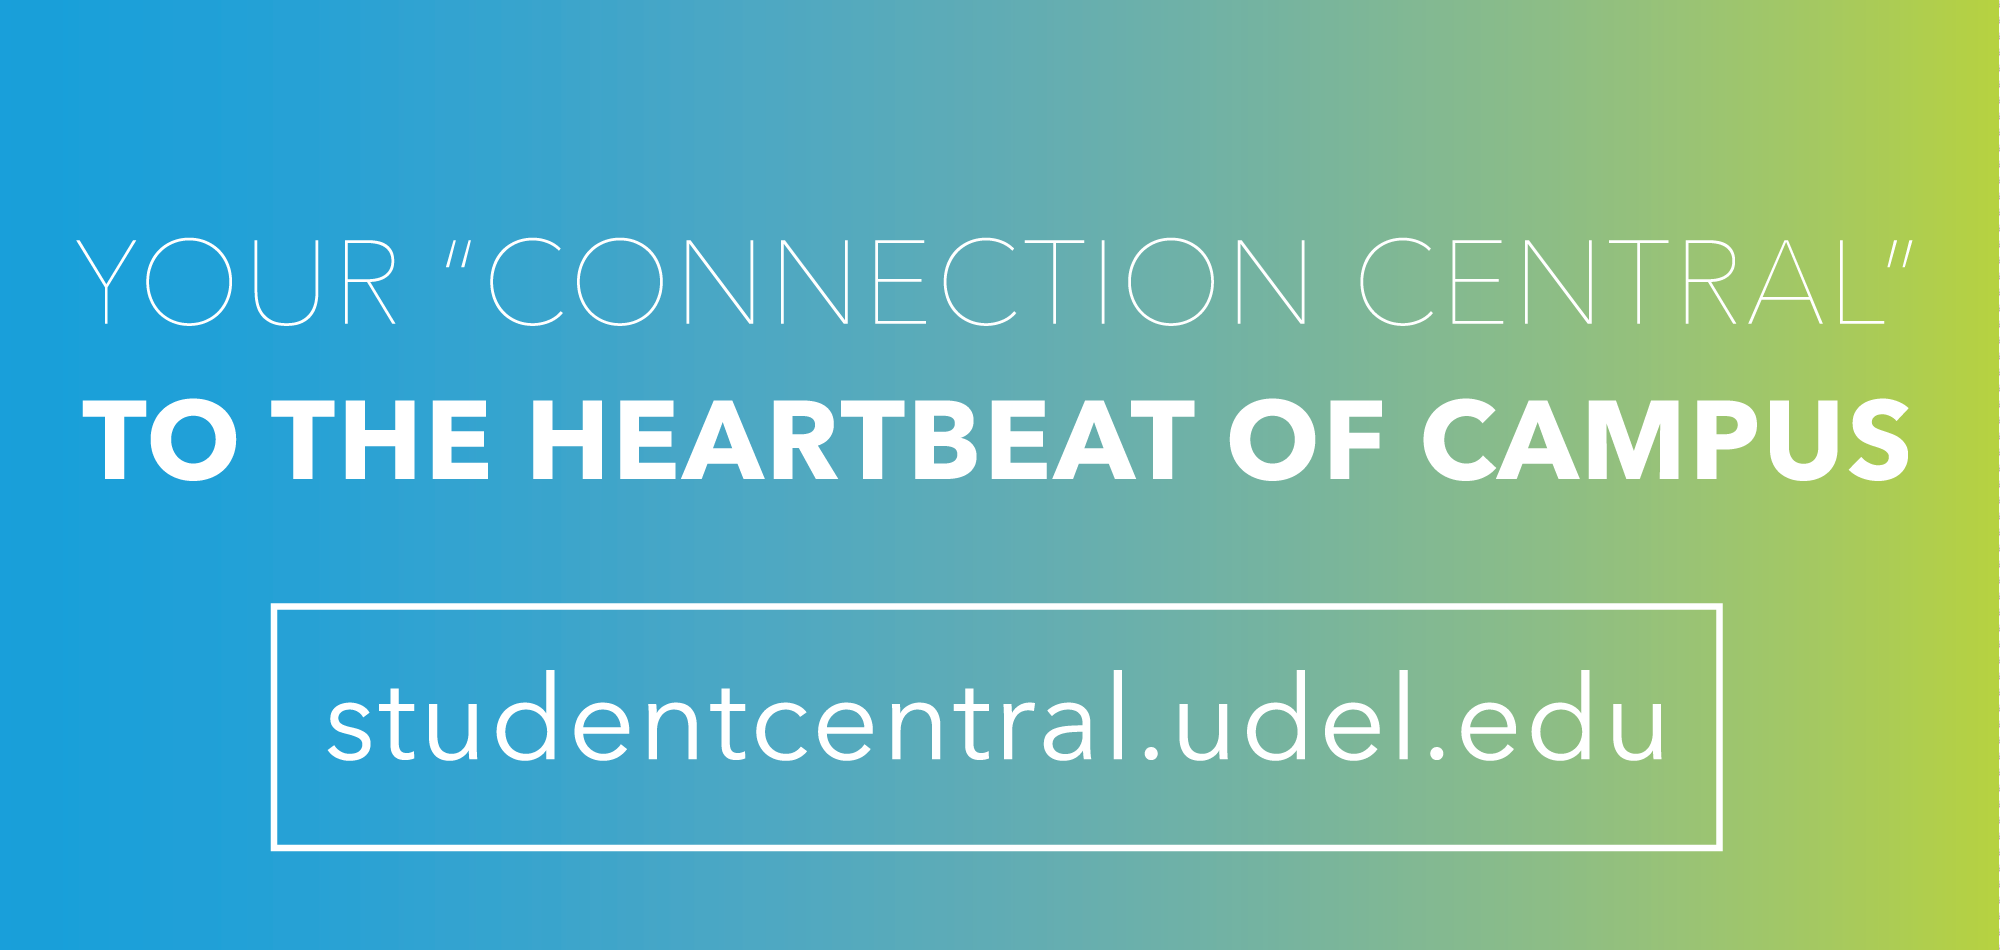 Your Connection Central To the Heartbeat of Campus studentcentral.udel.edu